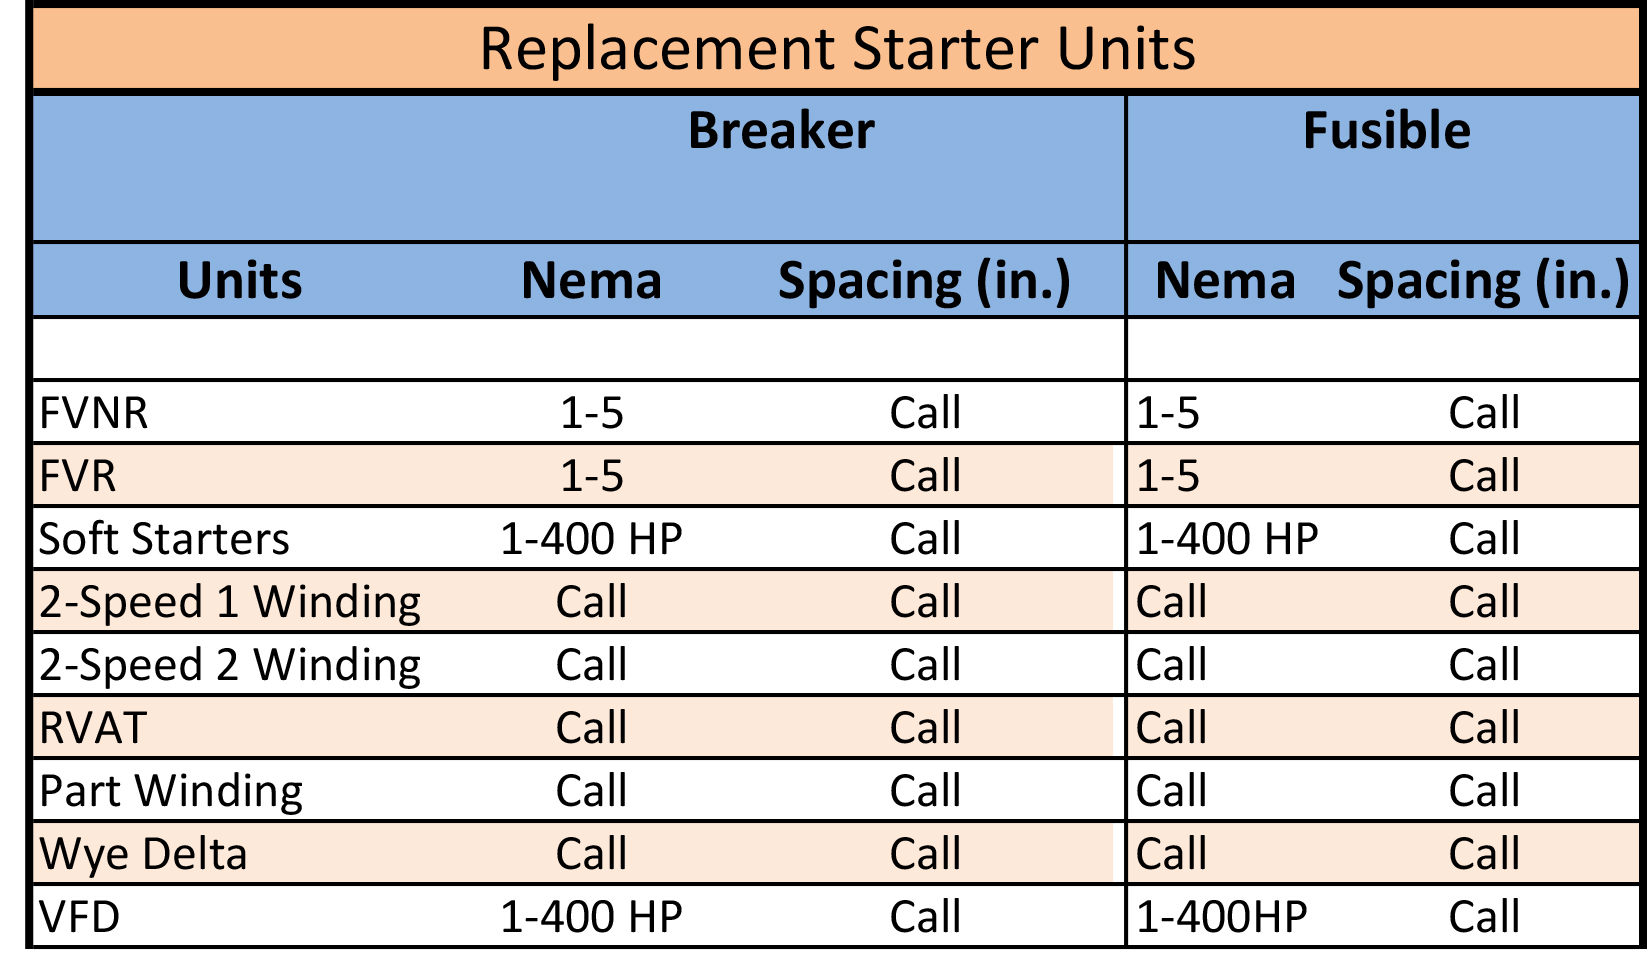 replacement-starter-table-final-copy.jpg